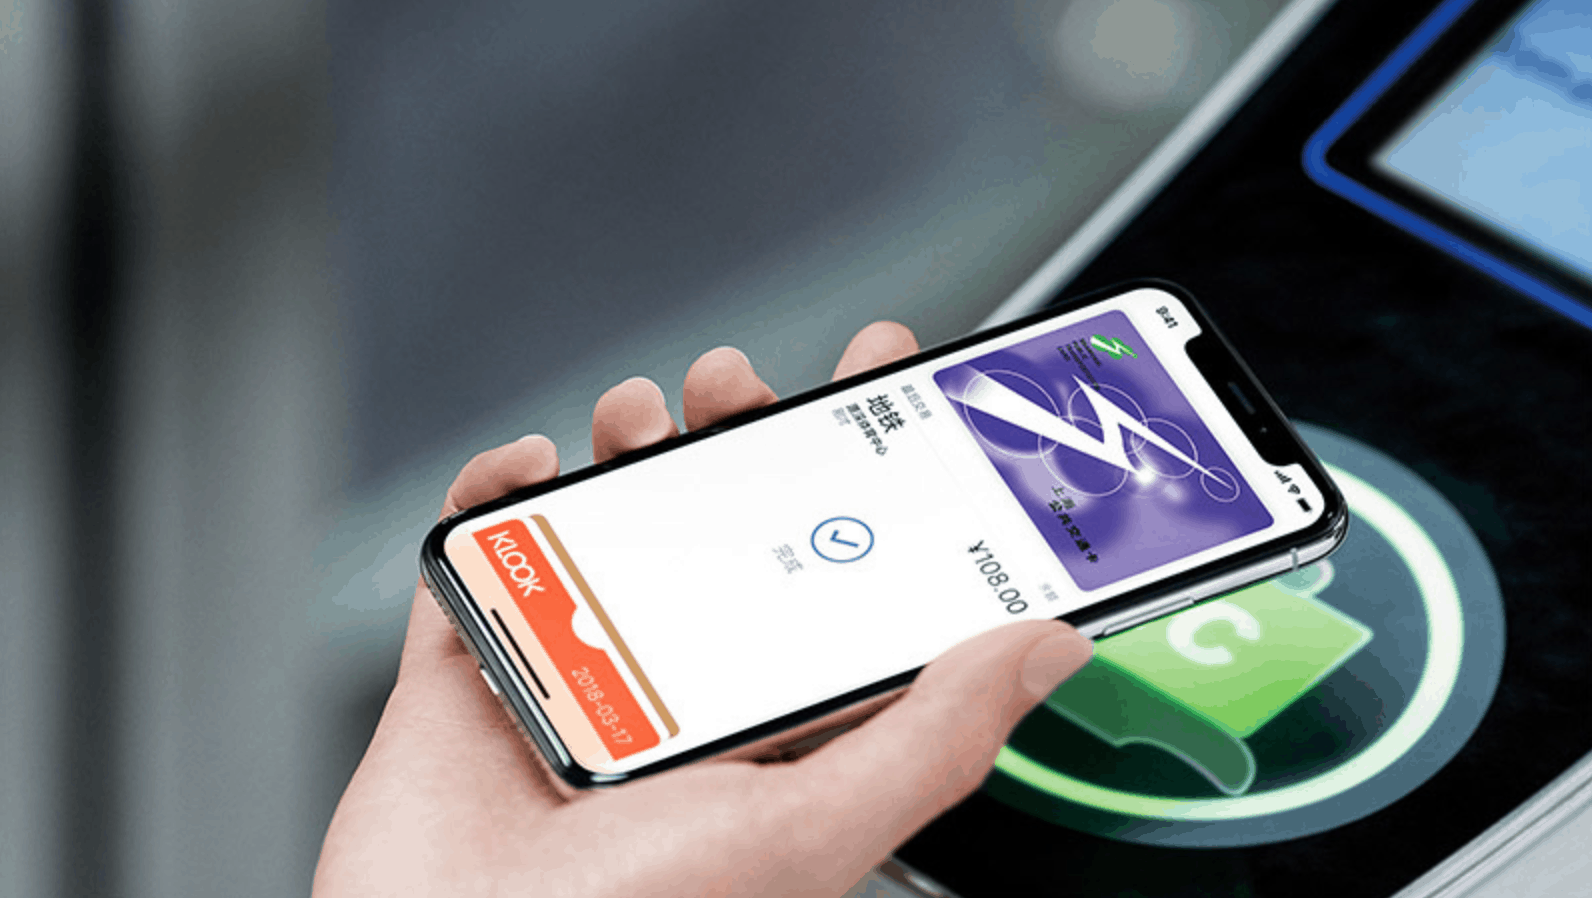 Apple Pay Terminals and Transit Gates